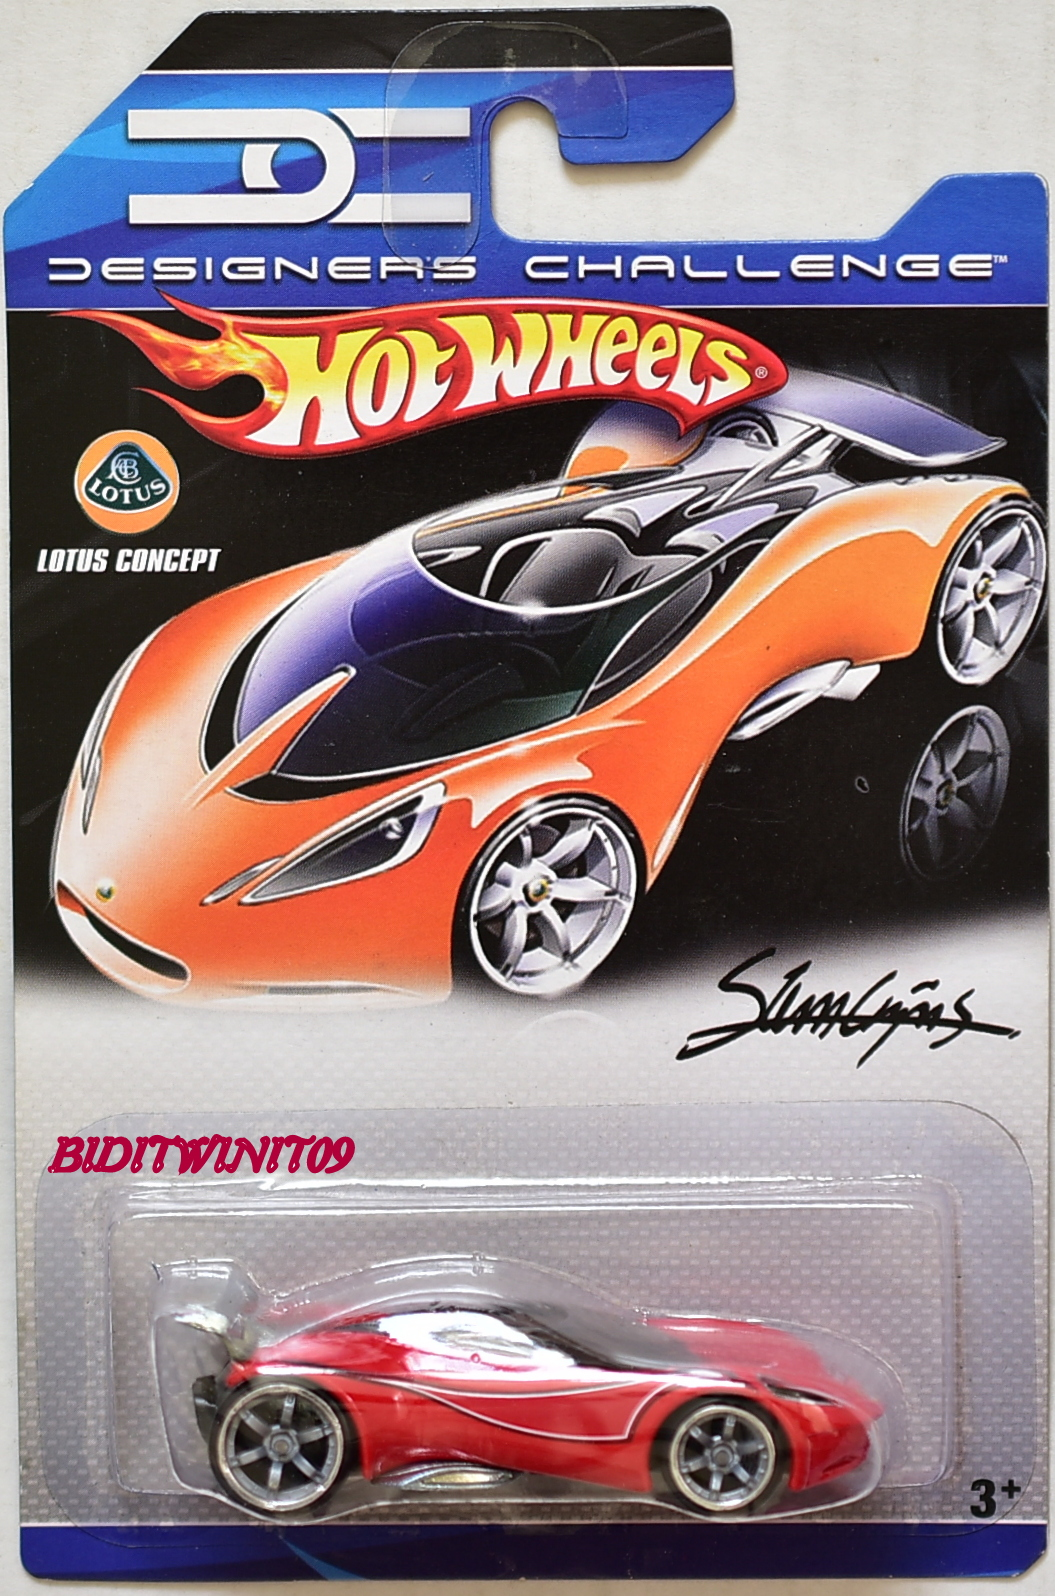 HOT WHEELS 2007 DESIGNERS CHALLENGE LOTUS CONCEPT RED